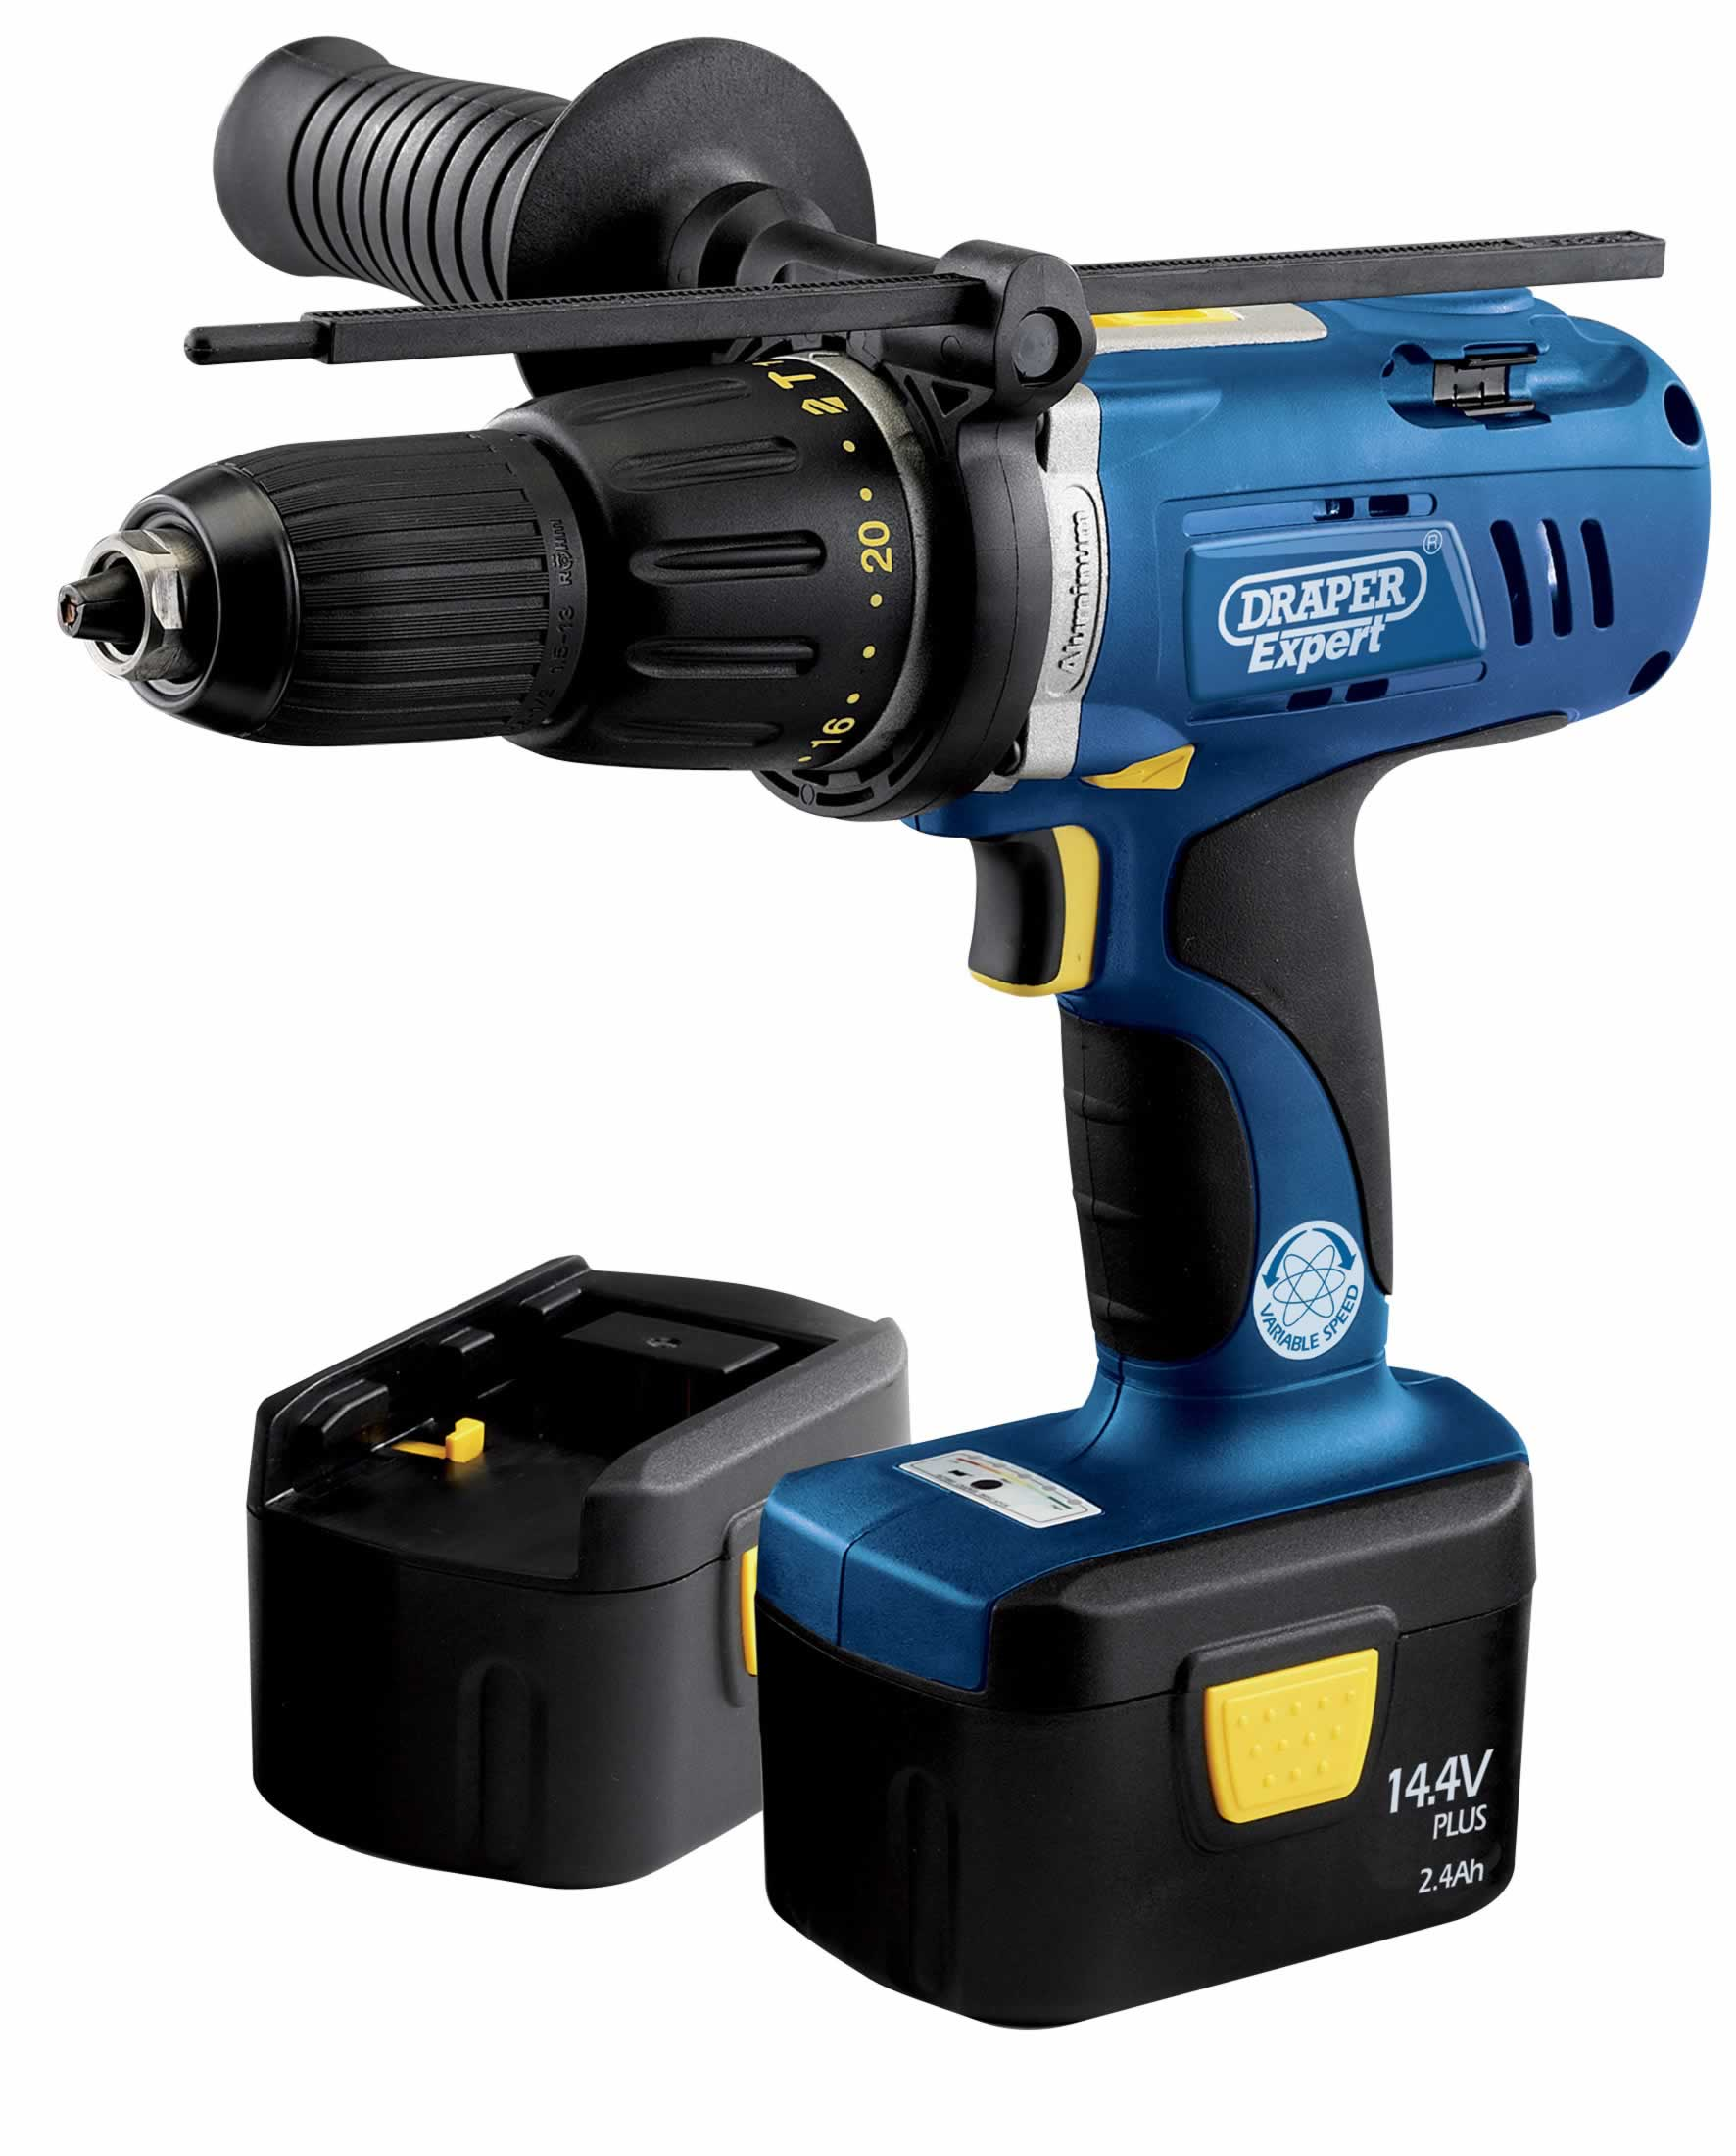 EXPERT 14.4V ELECTRONIC CORDLESS COMBINATION HAMMER DRILL 2 BATTERIES (2.4AH)